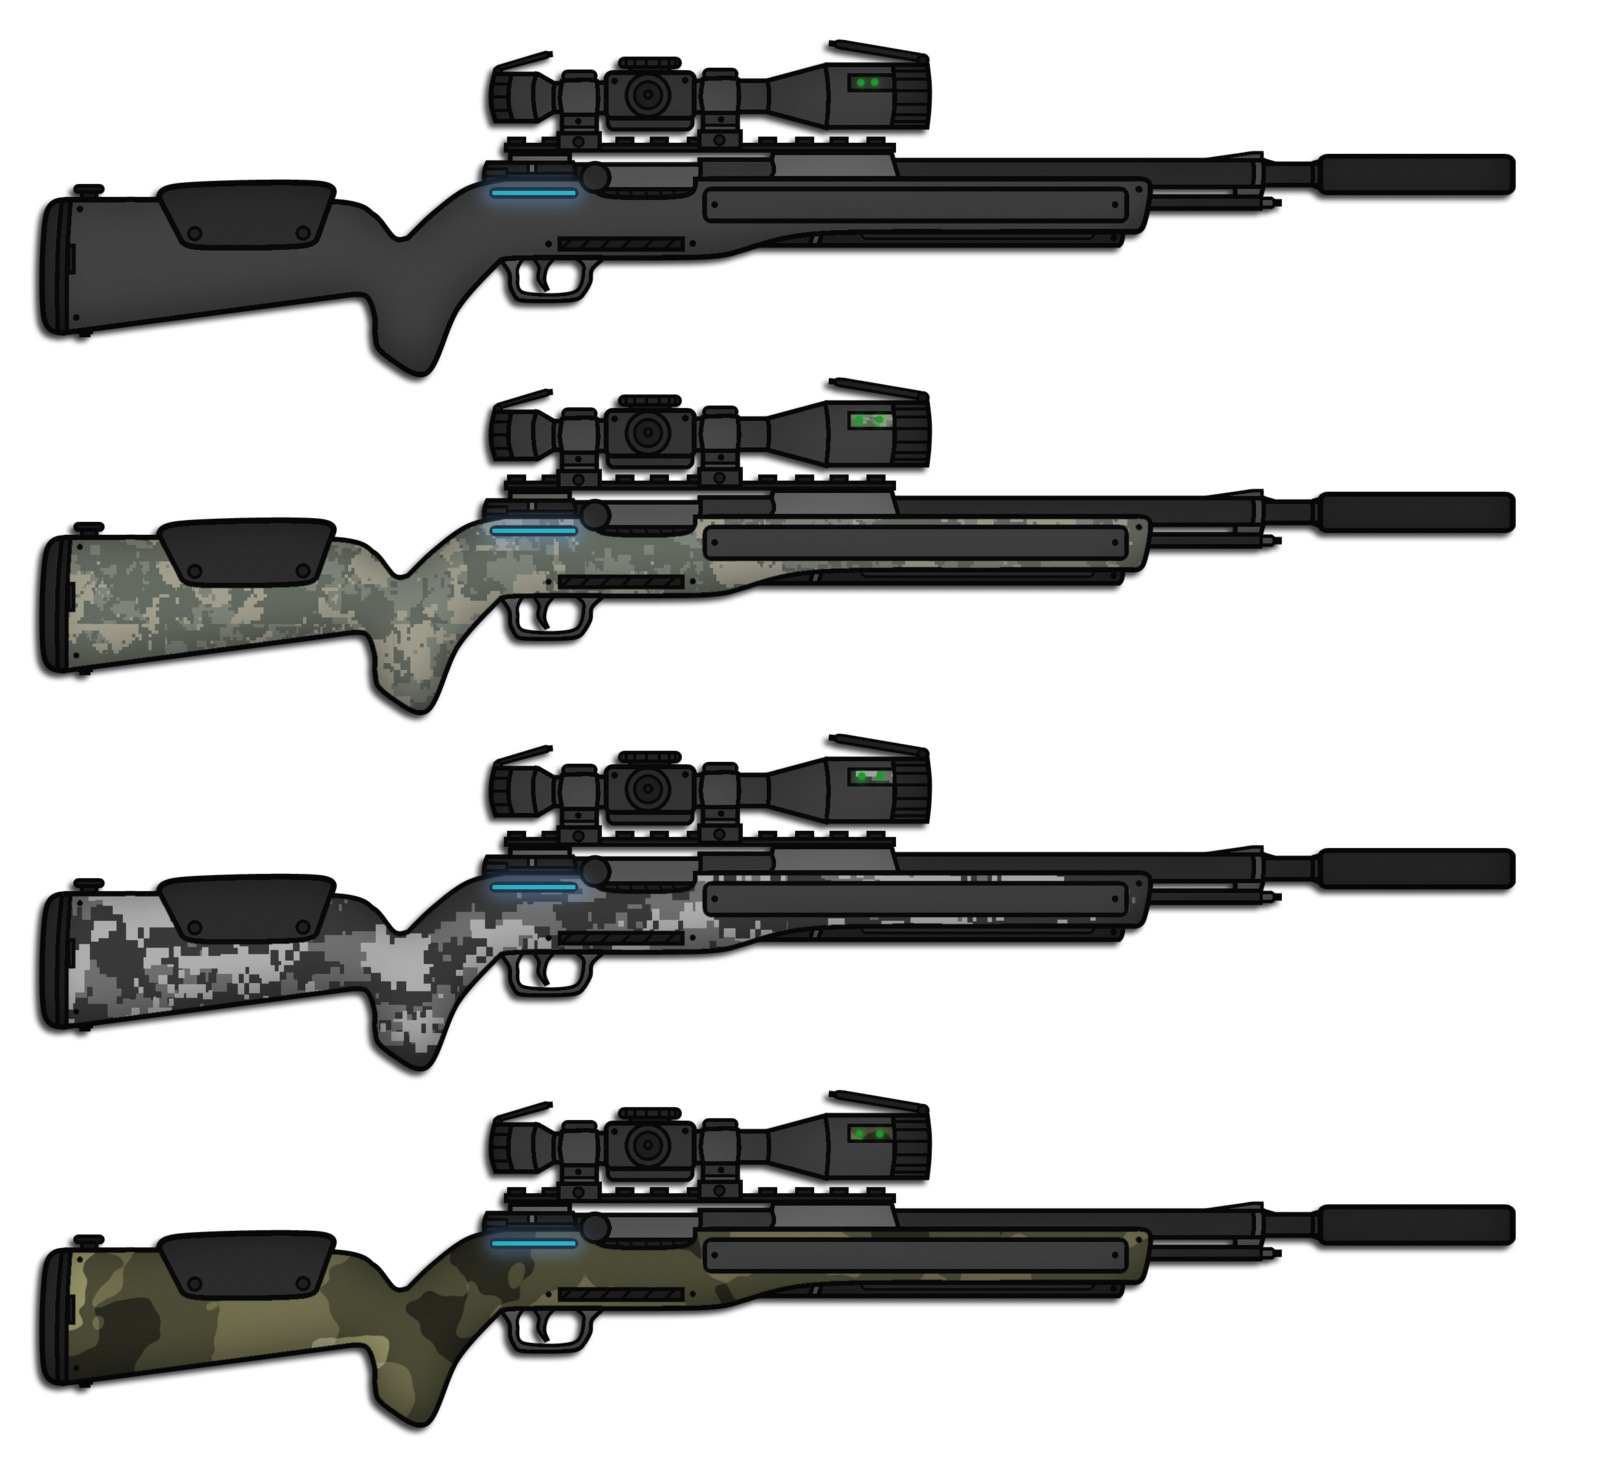 Drawn snipers bolt action rifle Skorpion66 DeviantArt 287 Rifle by